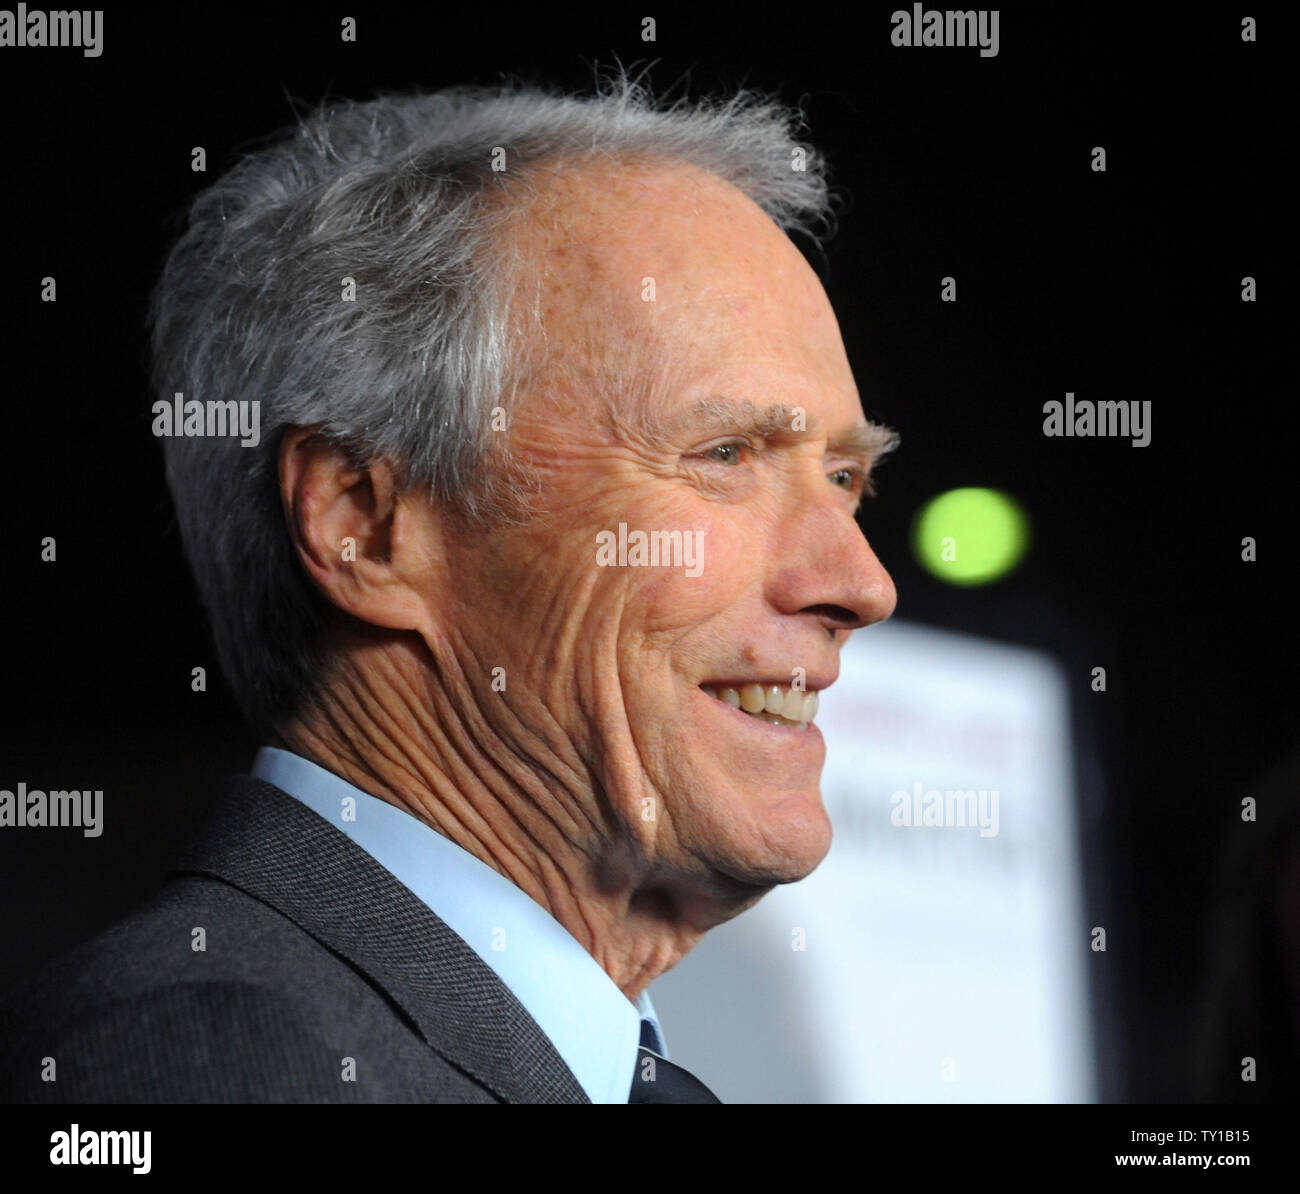 Director Clint Eastwood attends the premiere of his new biographic drama motion picture 'Invictus' in Beverly Hills, California on December 3, 2009. Morgan Freeman portrays Nelson Mandela, in his first term as the South African President, initiates a unique venture to unite the apartheid-torn land: enlist the national rugby team on a mission to win the 1995 Rugby World Cup.     UPI/Jim Ruymen - Stock Image